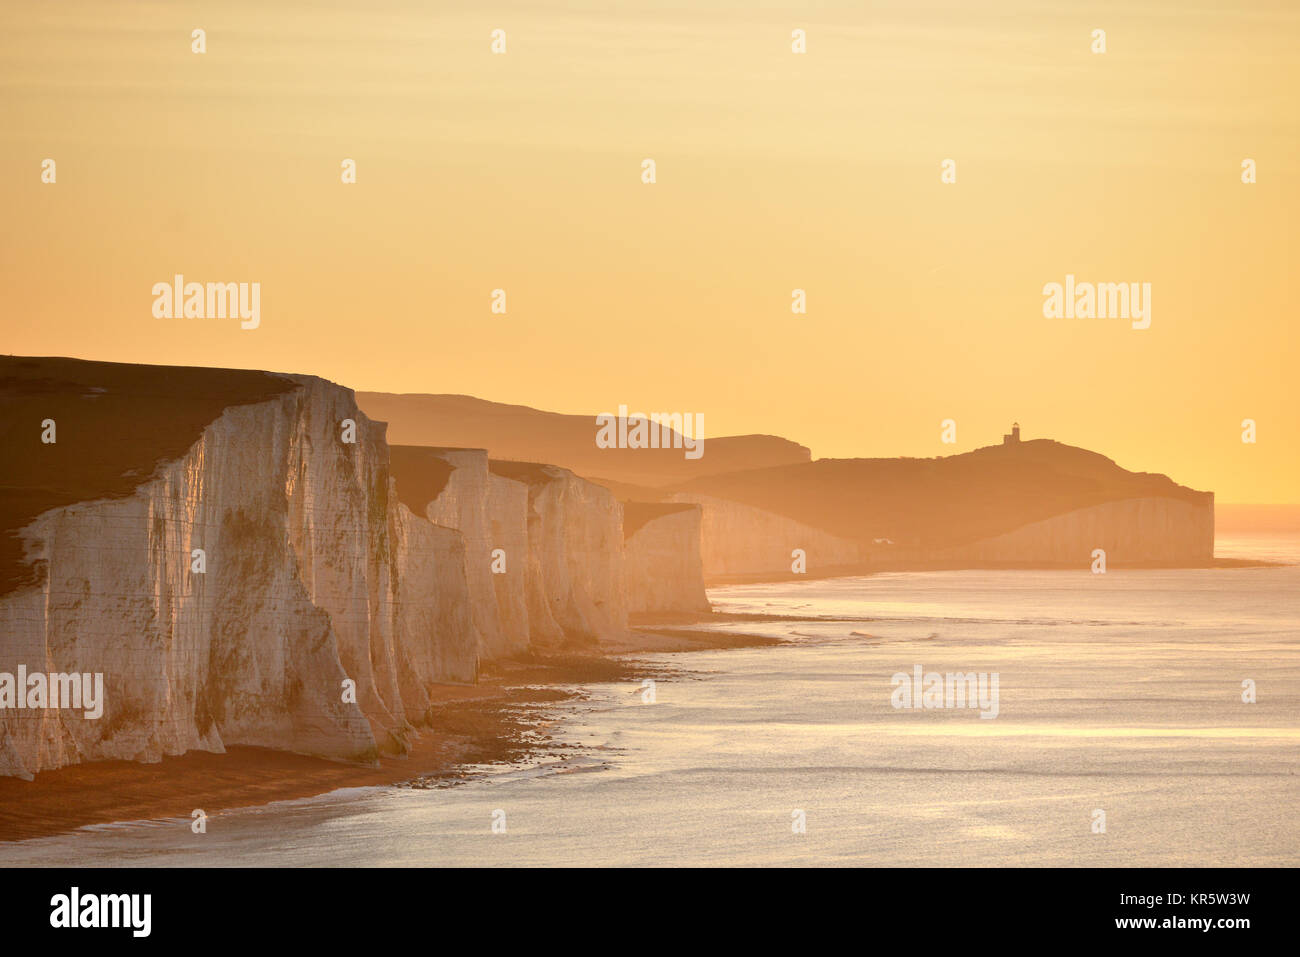 Cuckmere Haven, East Sussex. 18th December 2017. The morning sun illuminating the iconic Seven Sisters chalk cliffs - Stock Image